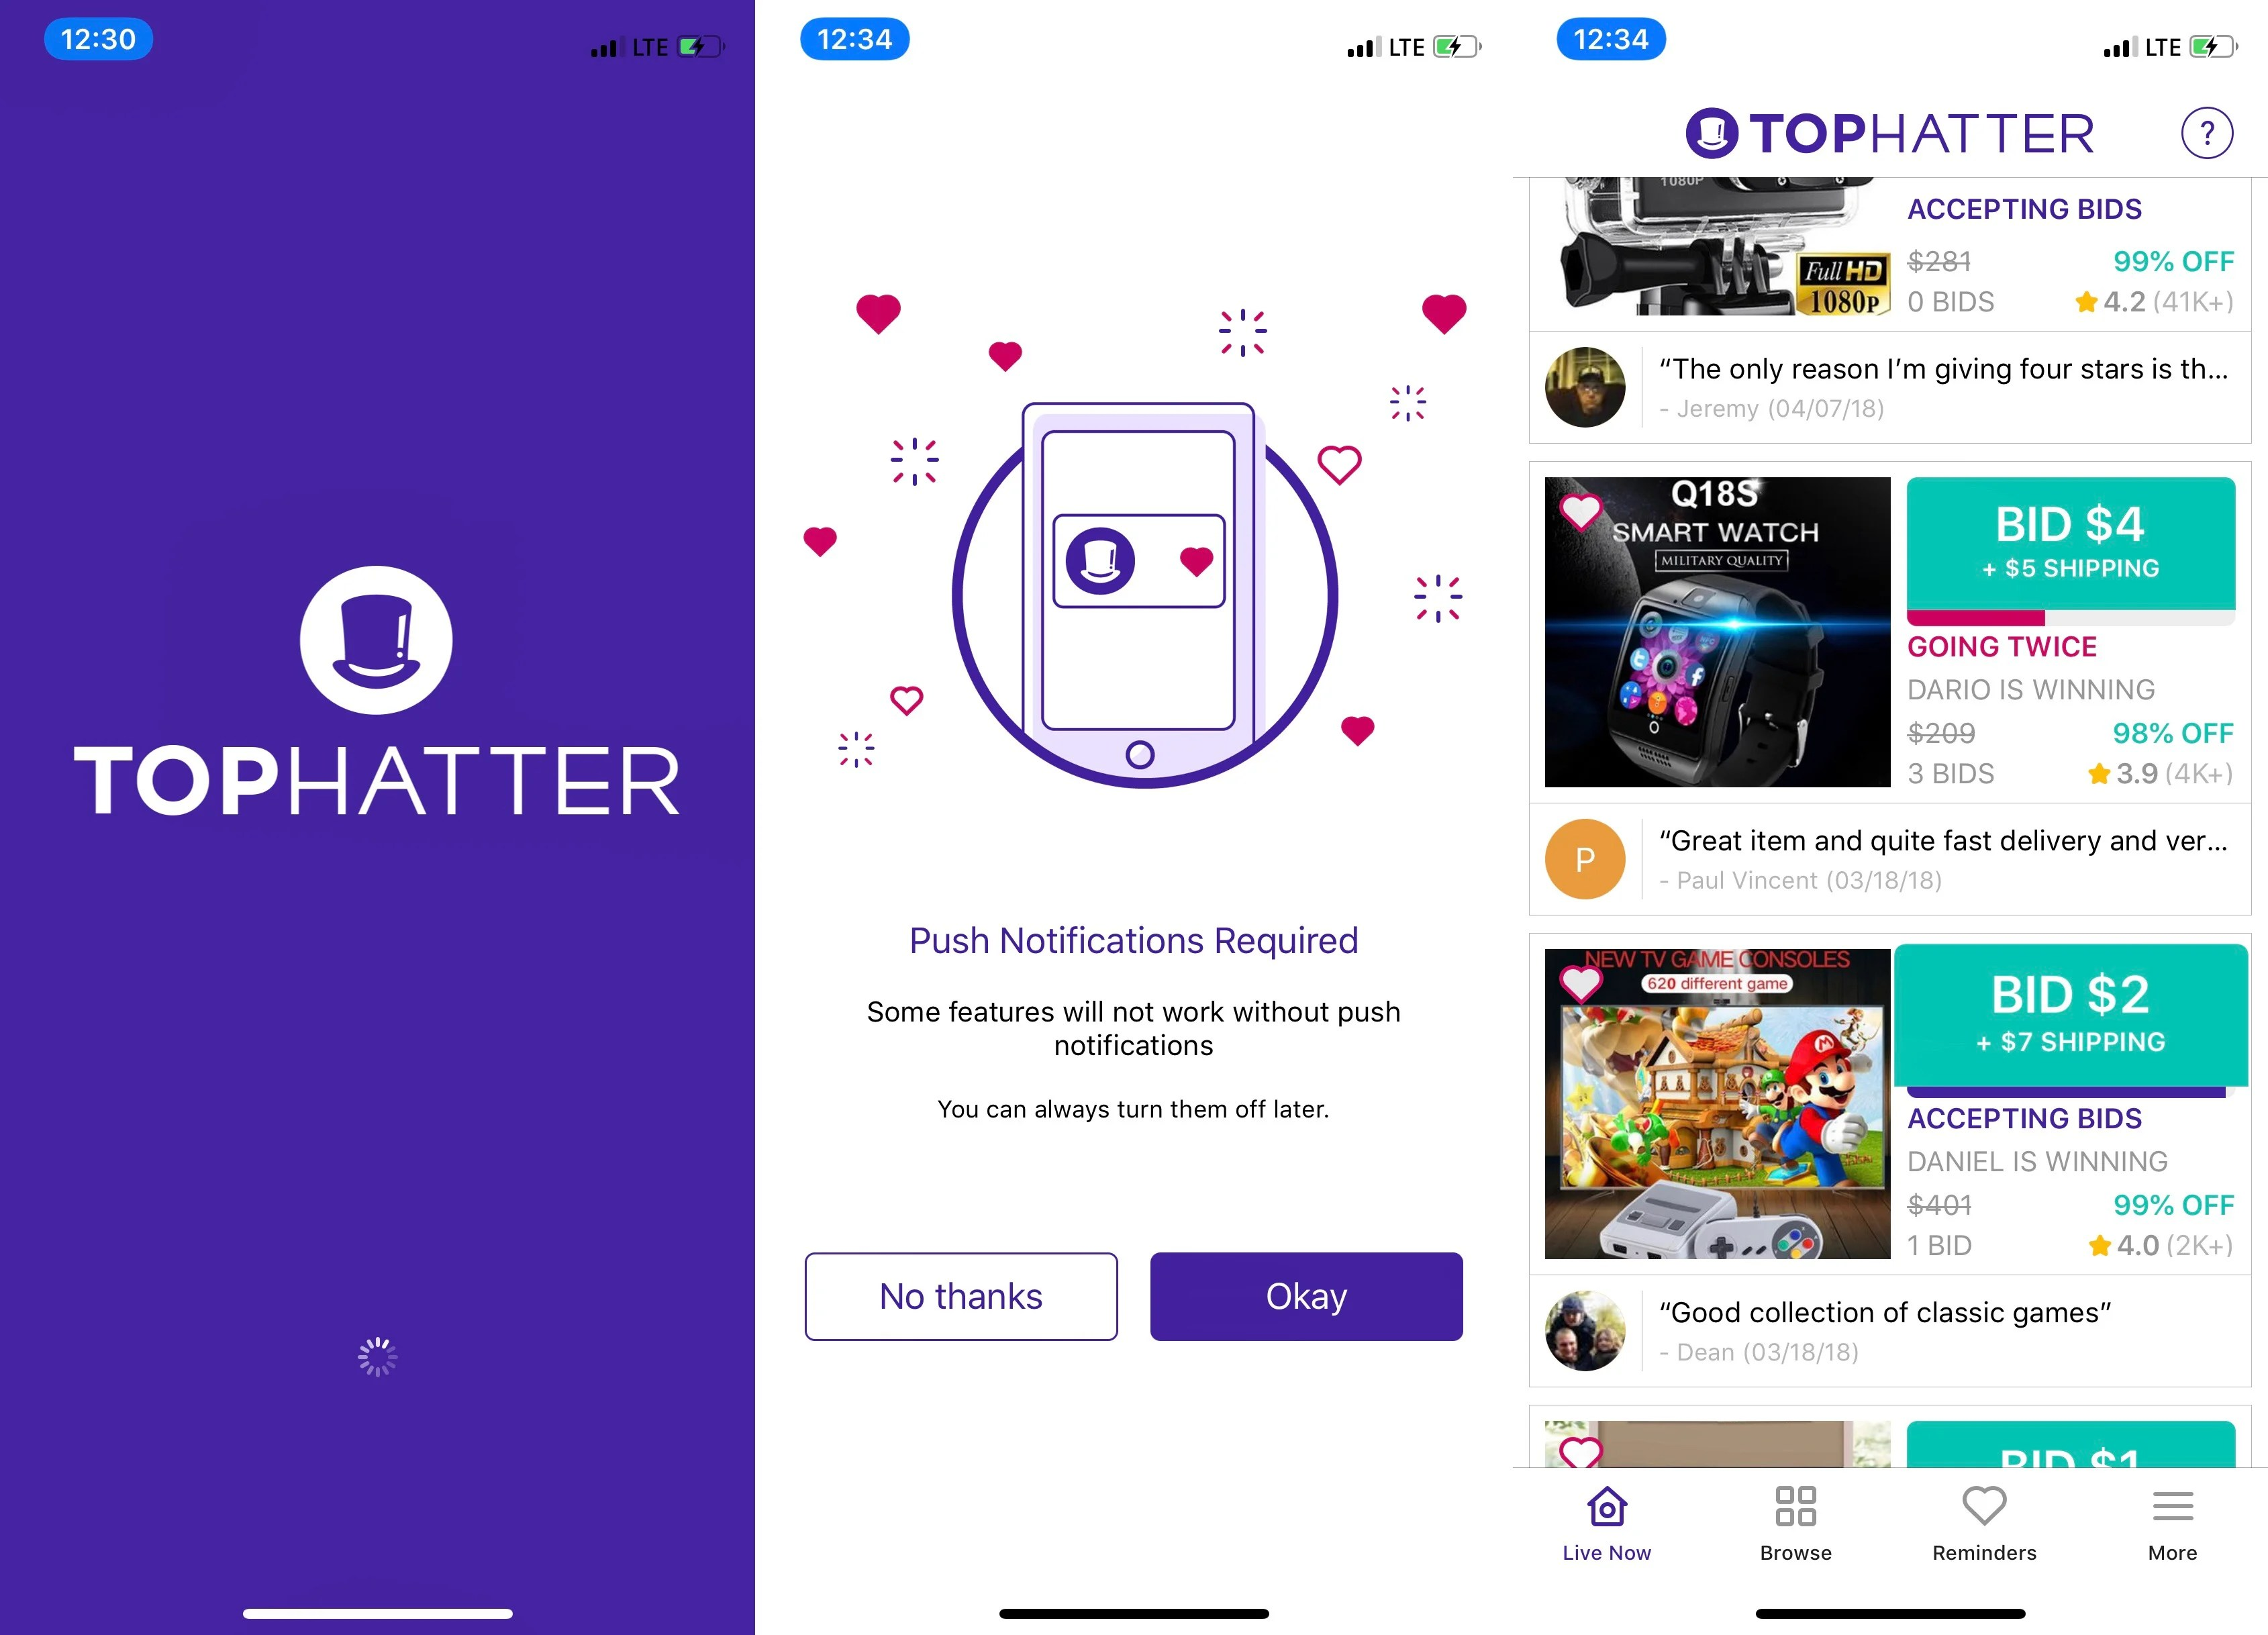 Tophatter: 8 Things Users Need to Know